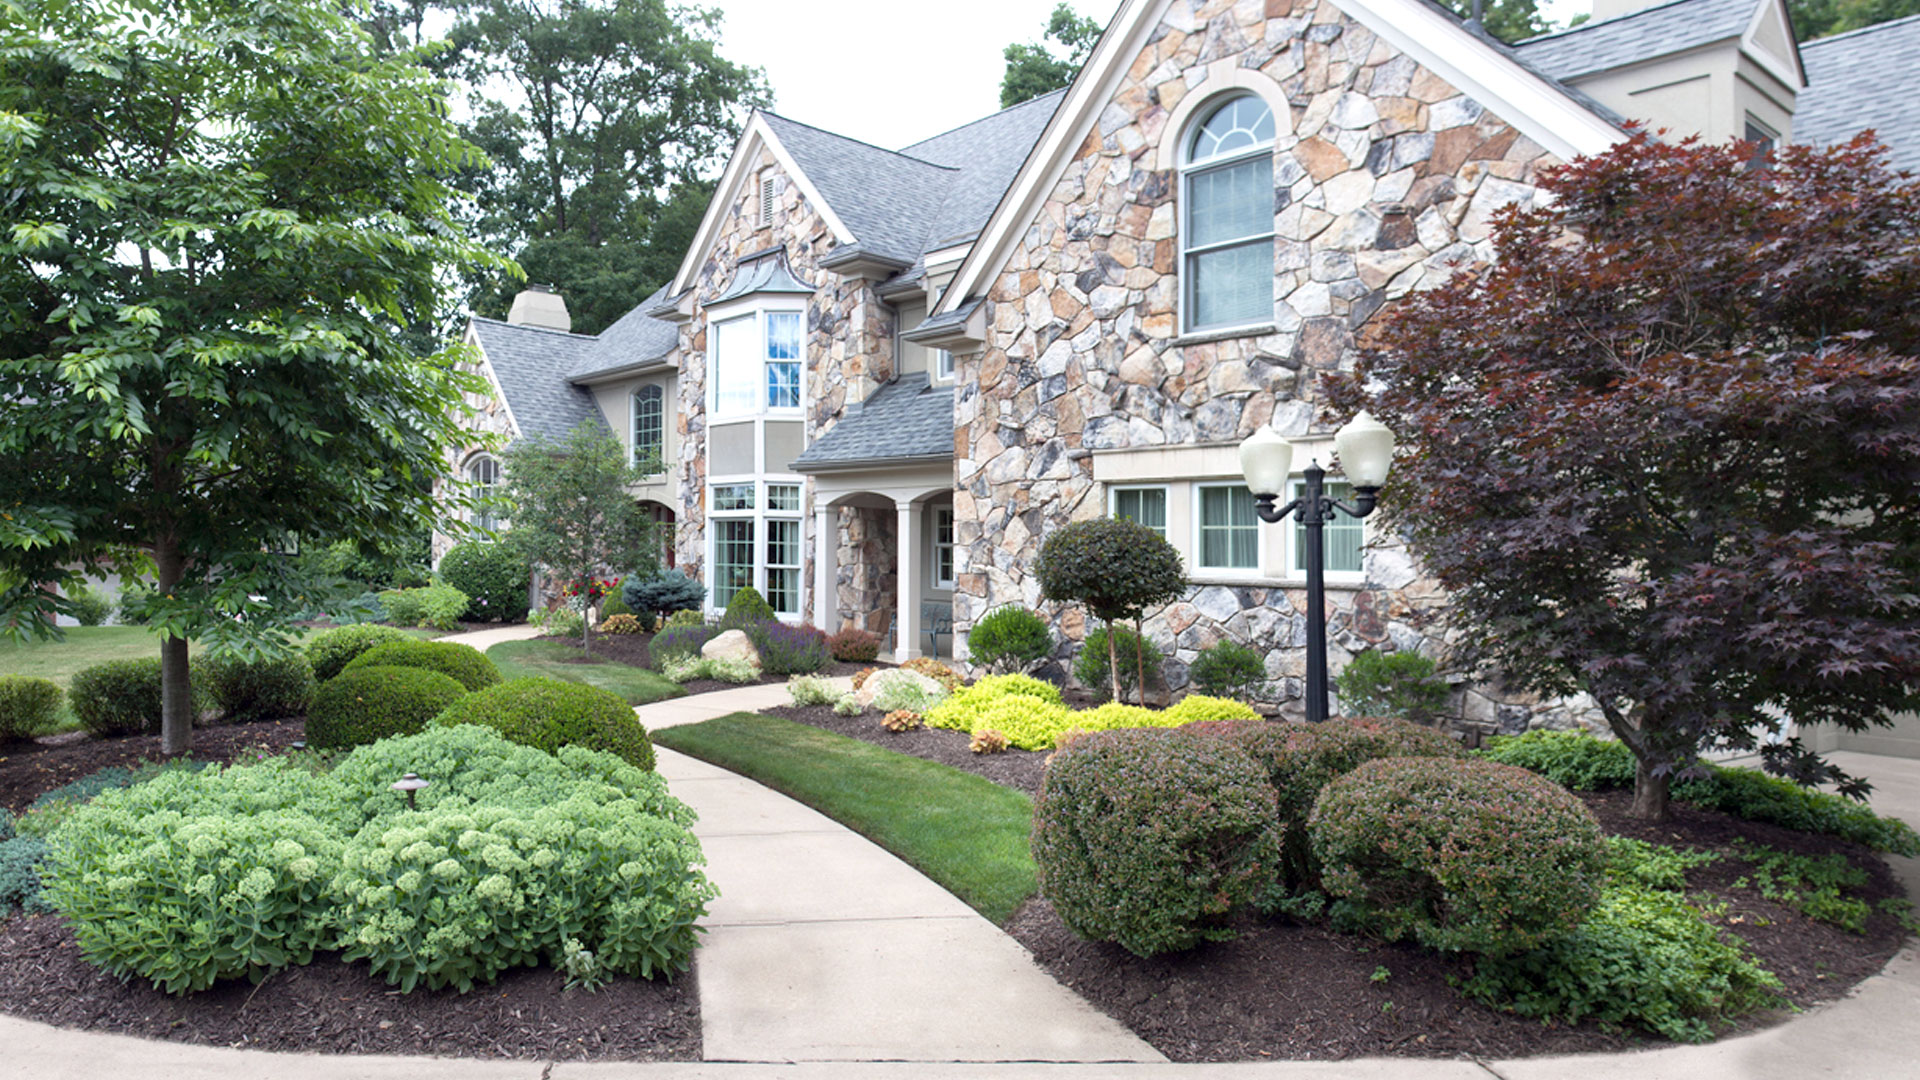 Curb Appeal Increases Home Value